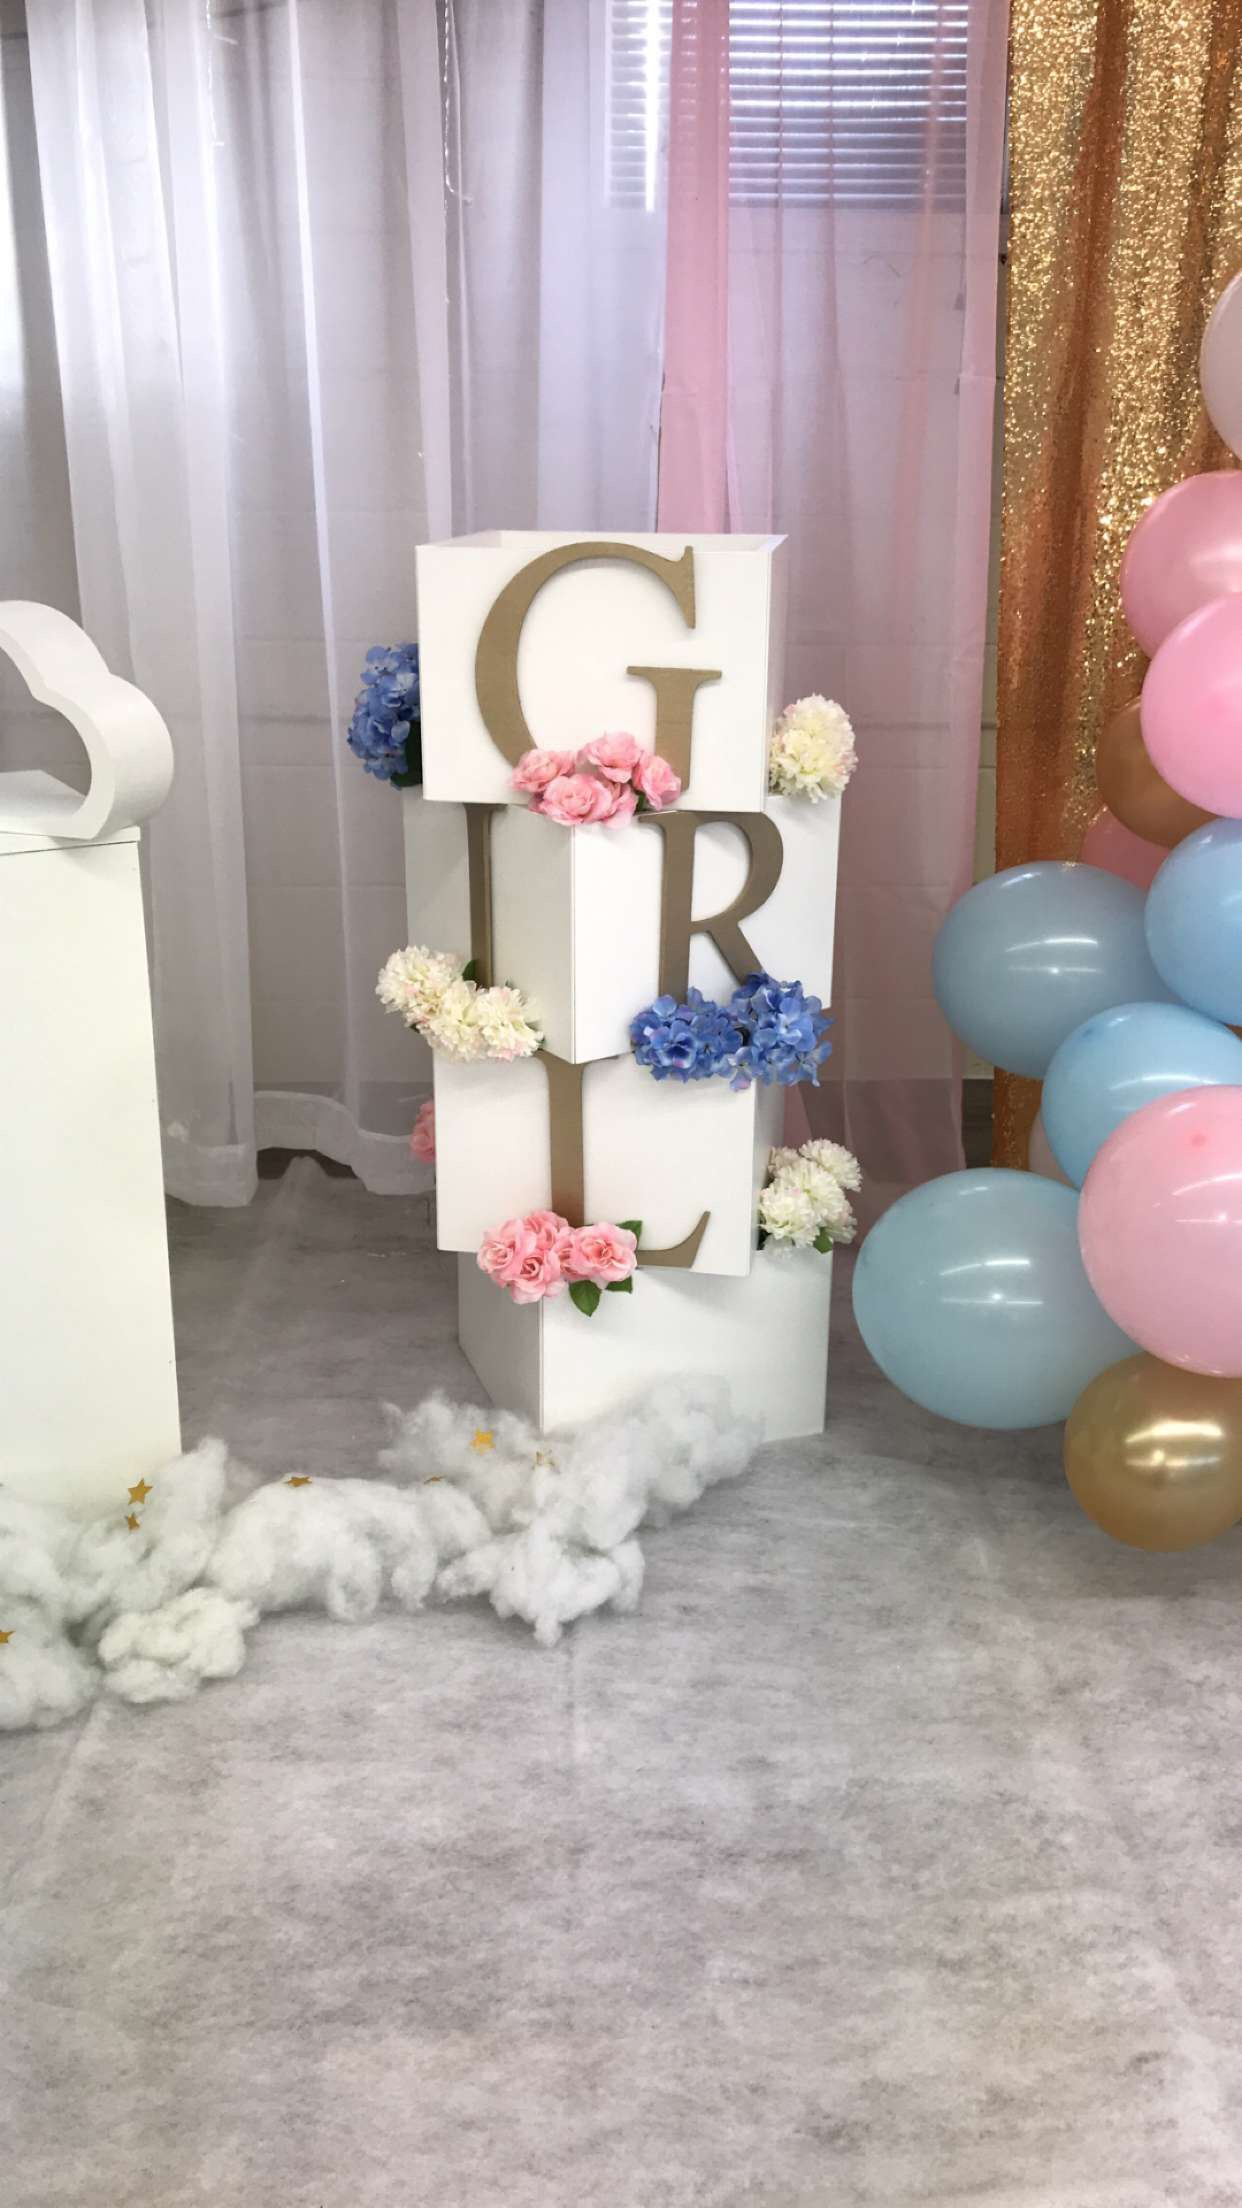 Pin By Ididthat Decor On Name Box Baby Shower Decorations Baby Shower Shower Decorations